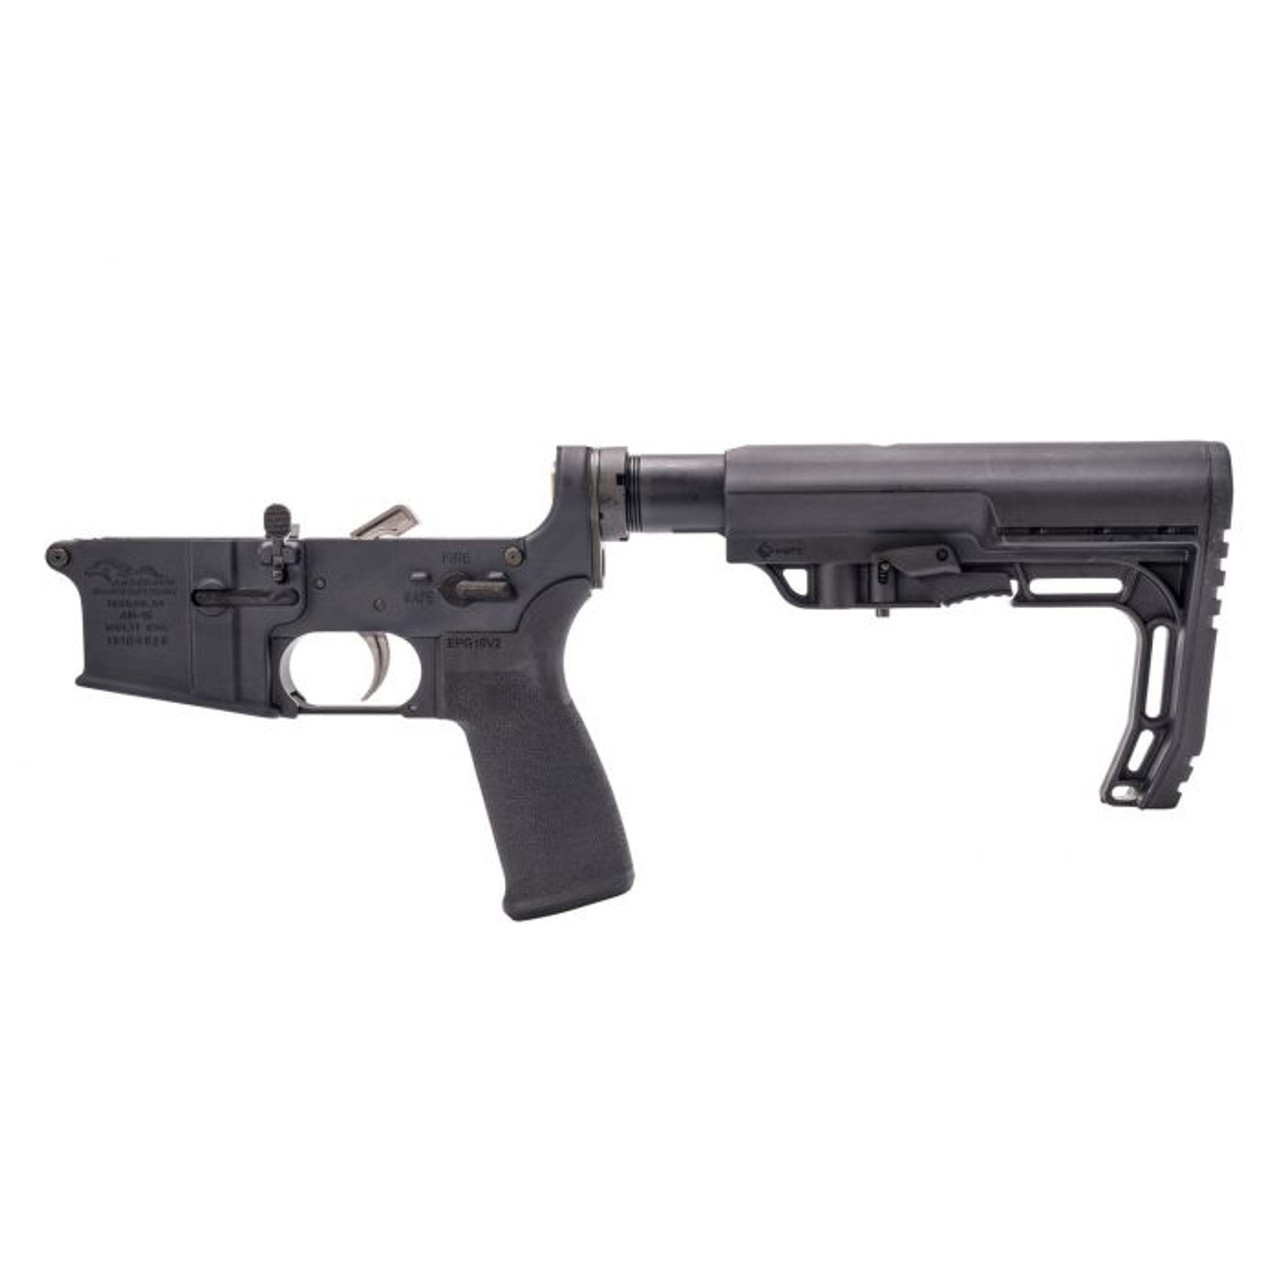 Anderson AM15 Complete Lower/MFT Stock CALIFORNIA LEGAL - .223/5.56